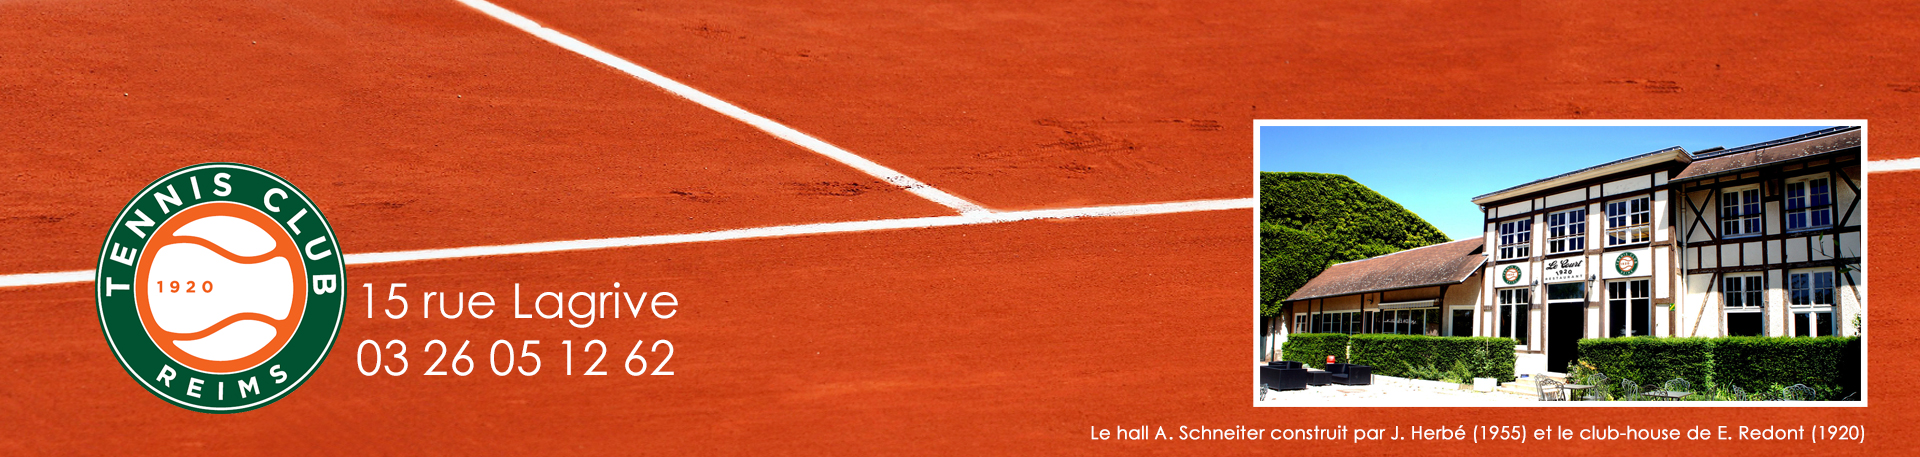 Tennis Club de Reims : le blog